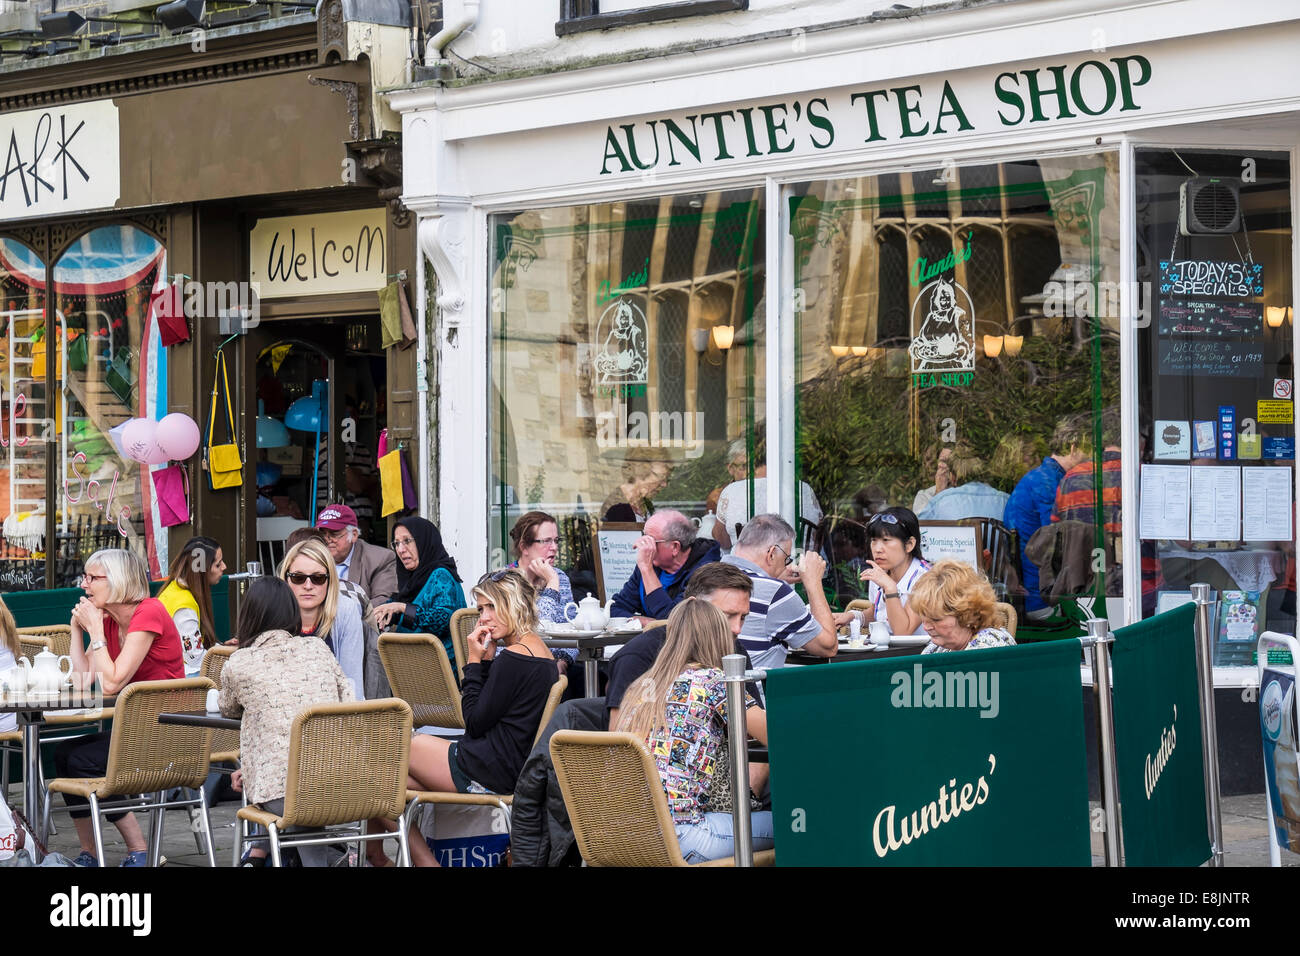 aunties-tea-shop-cambridge-england-E8JNT